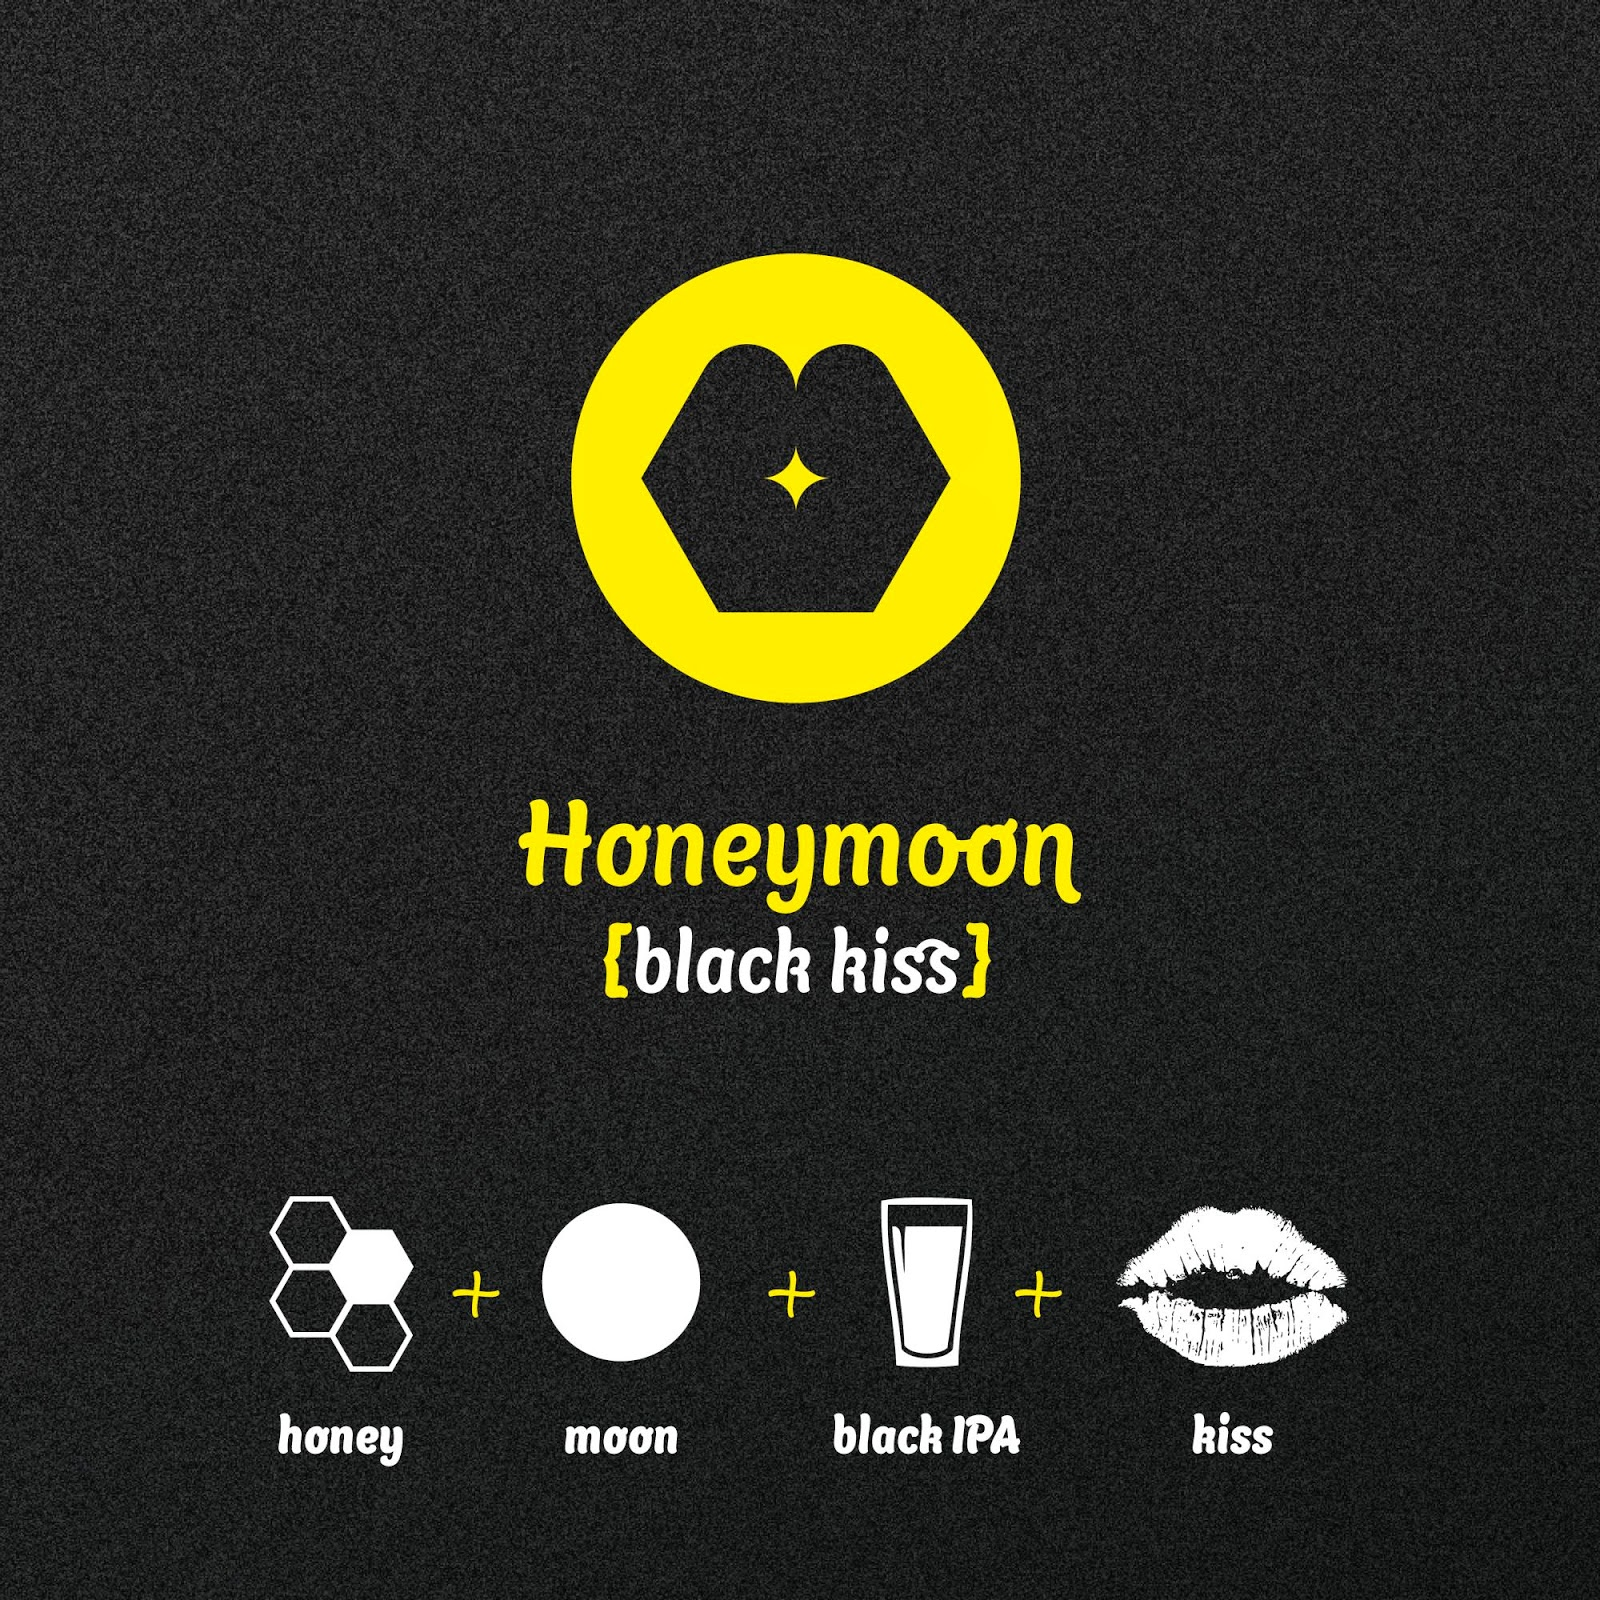 Martin Fek's Honeymoon Black Kiss Design